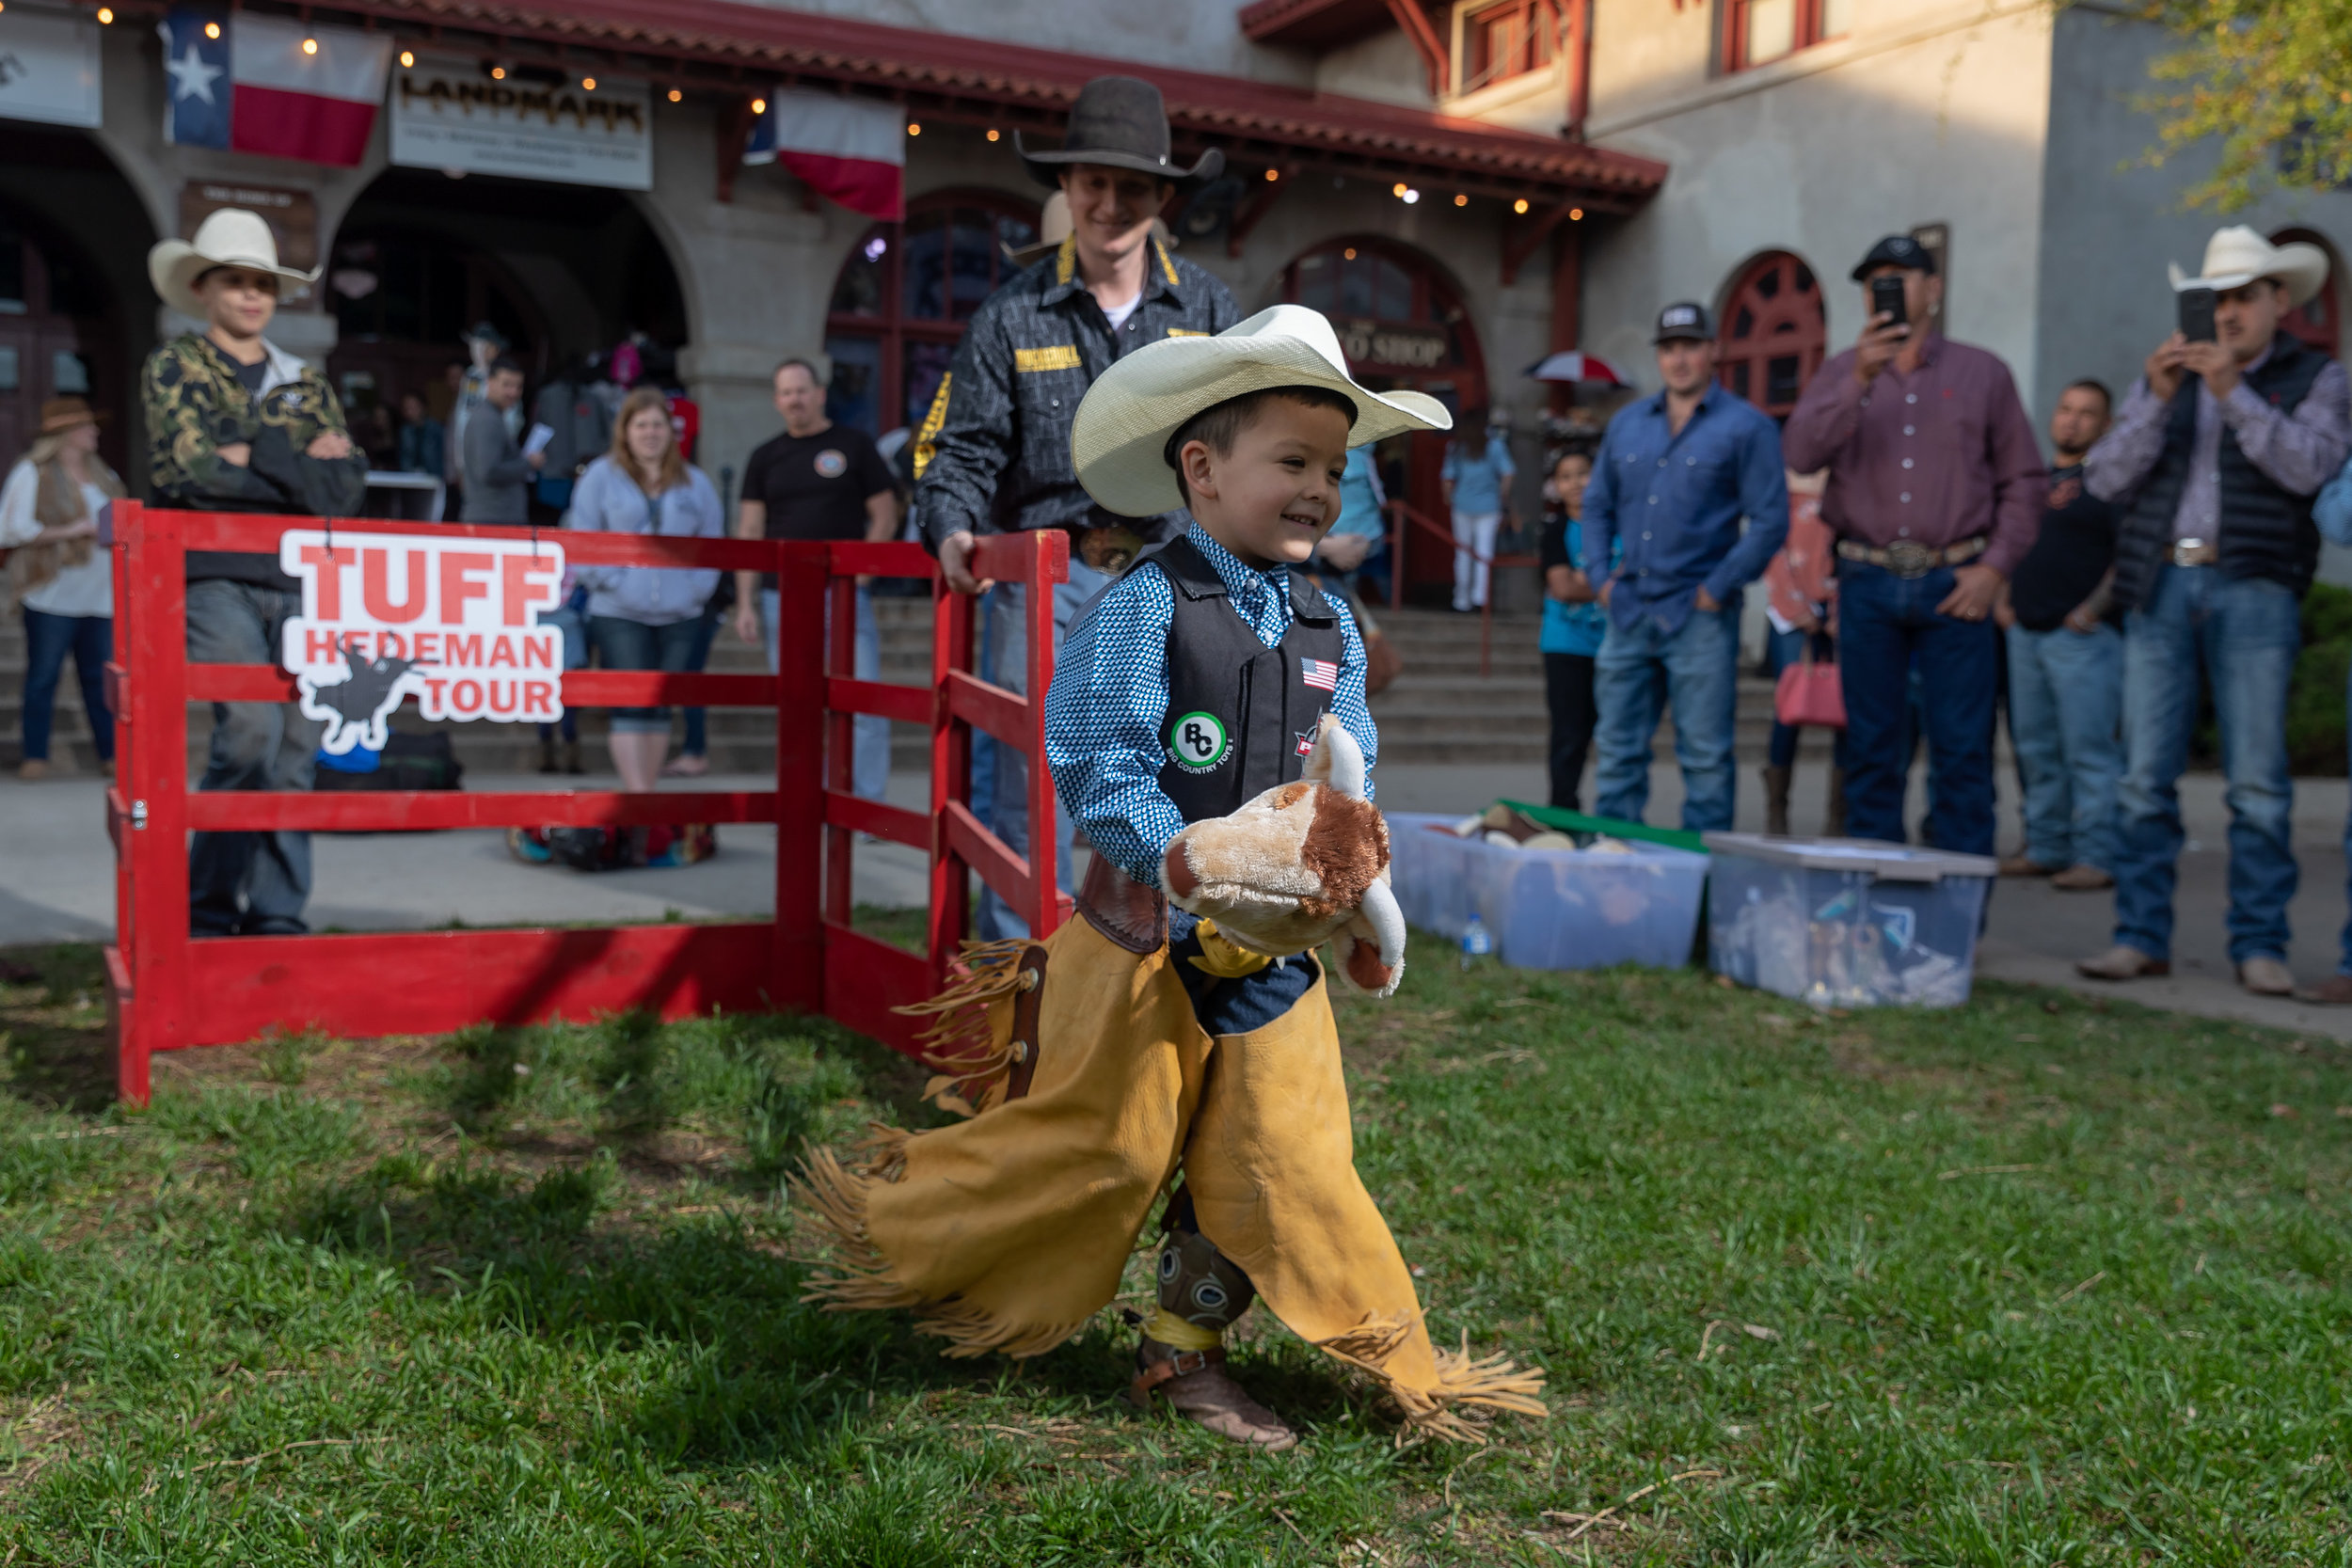 Ivan Leyva, Jr. was the winner of the Stick Bull Riding contest, a fan favorite in Fort Worth